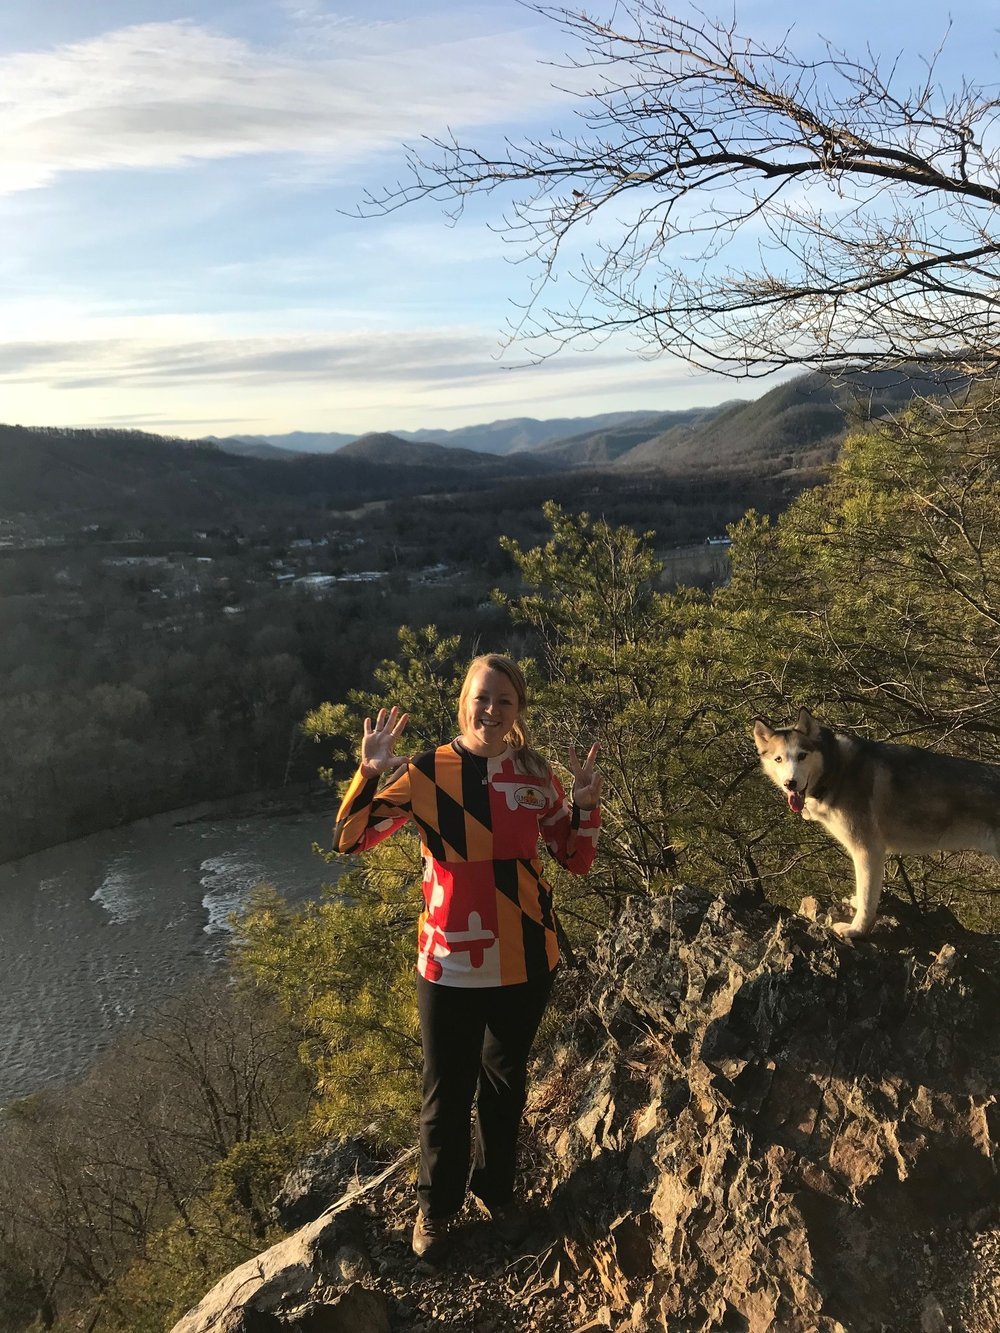 Kerri's 52nd Hike in Hot Springs, NC